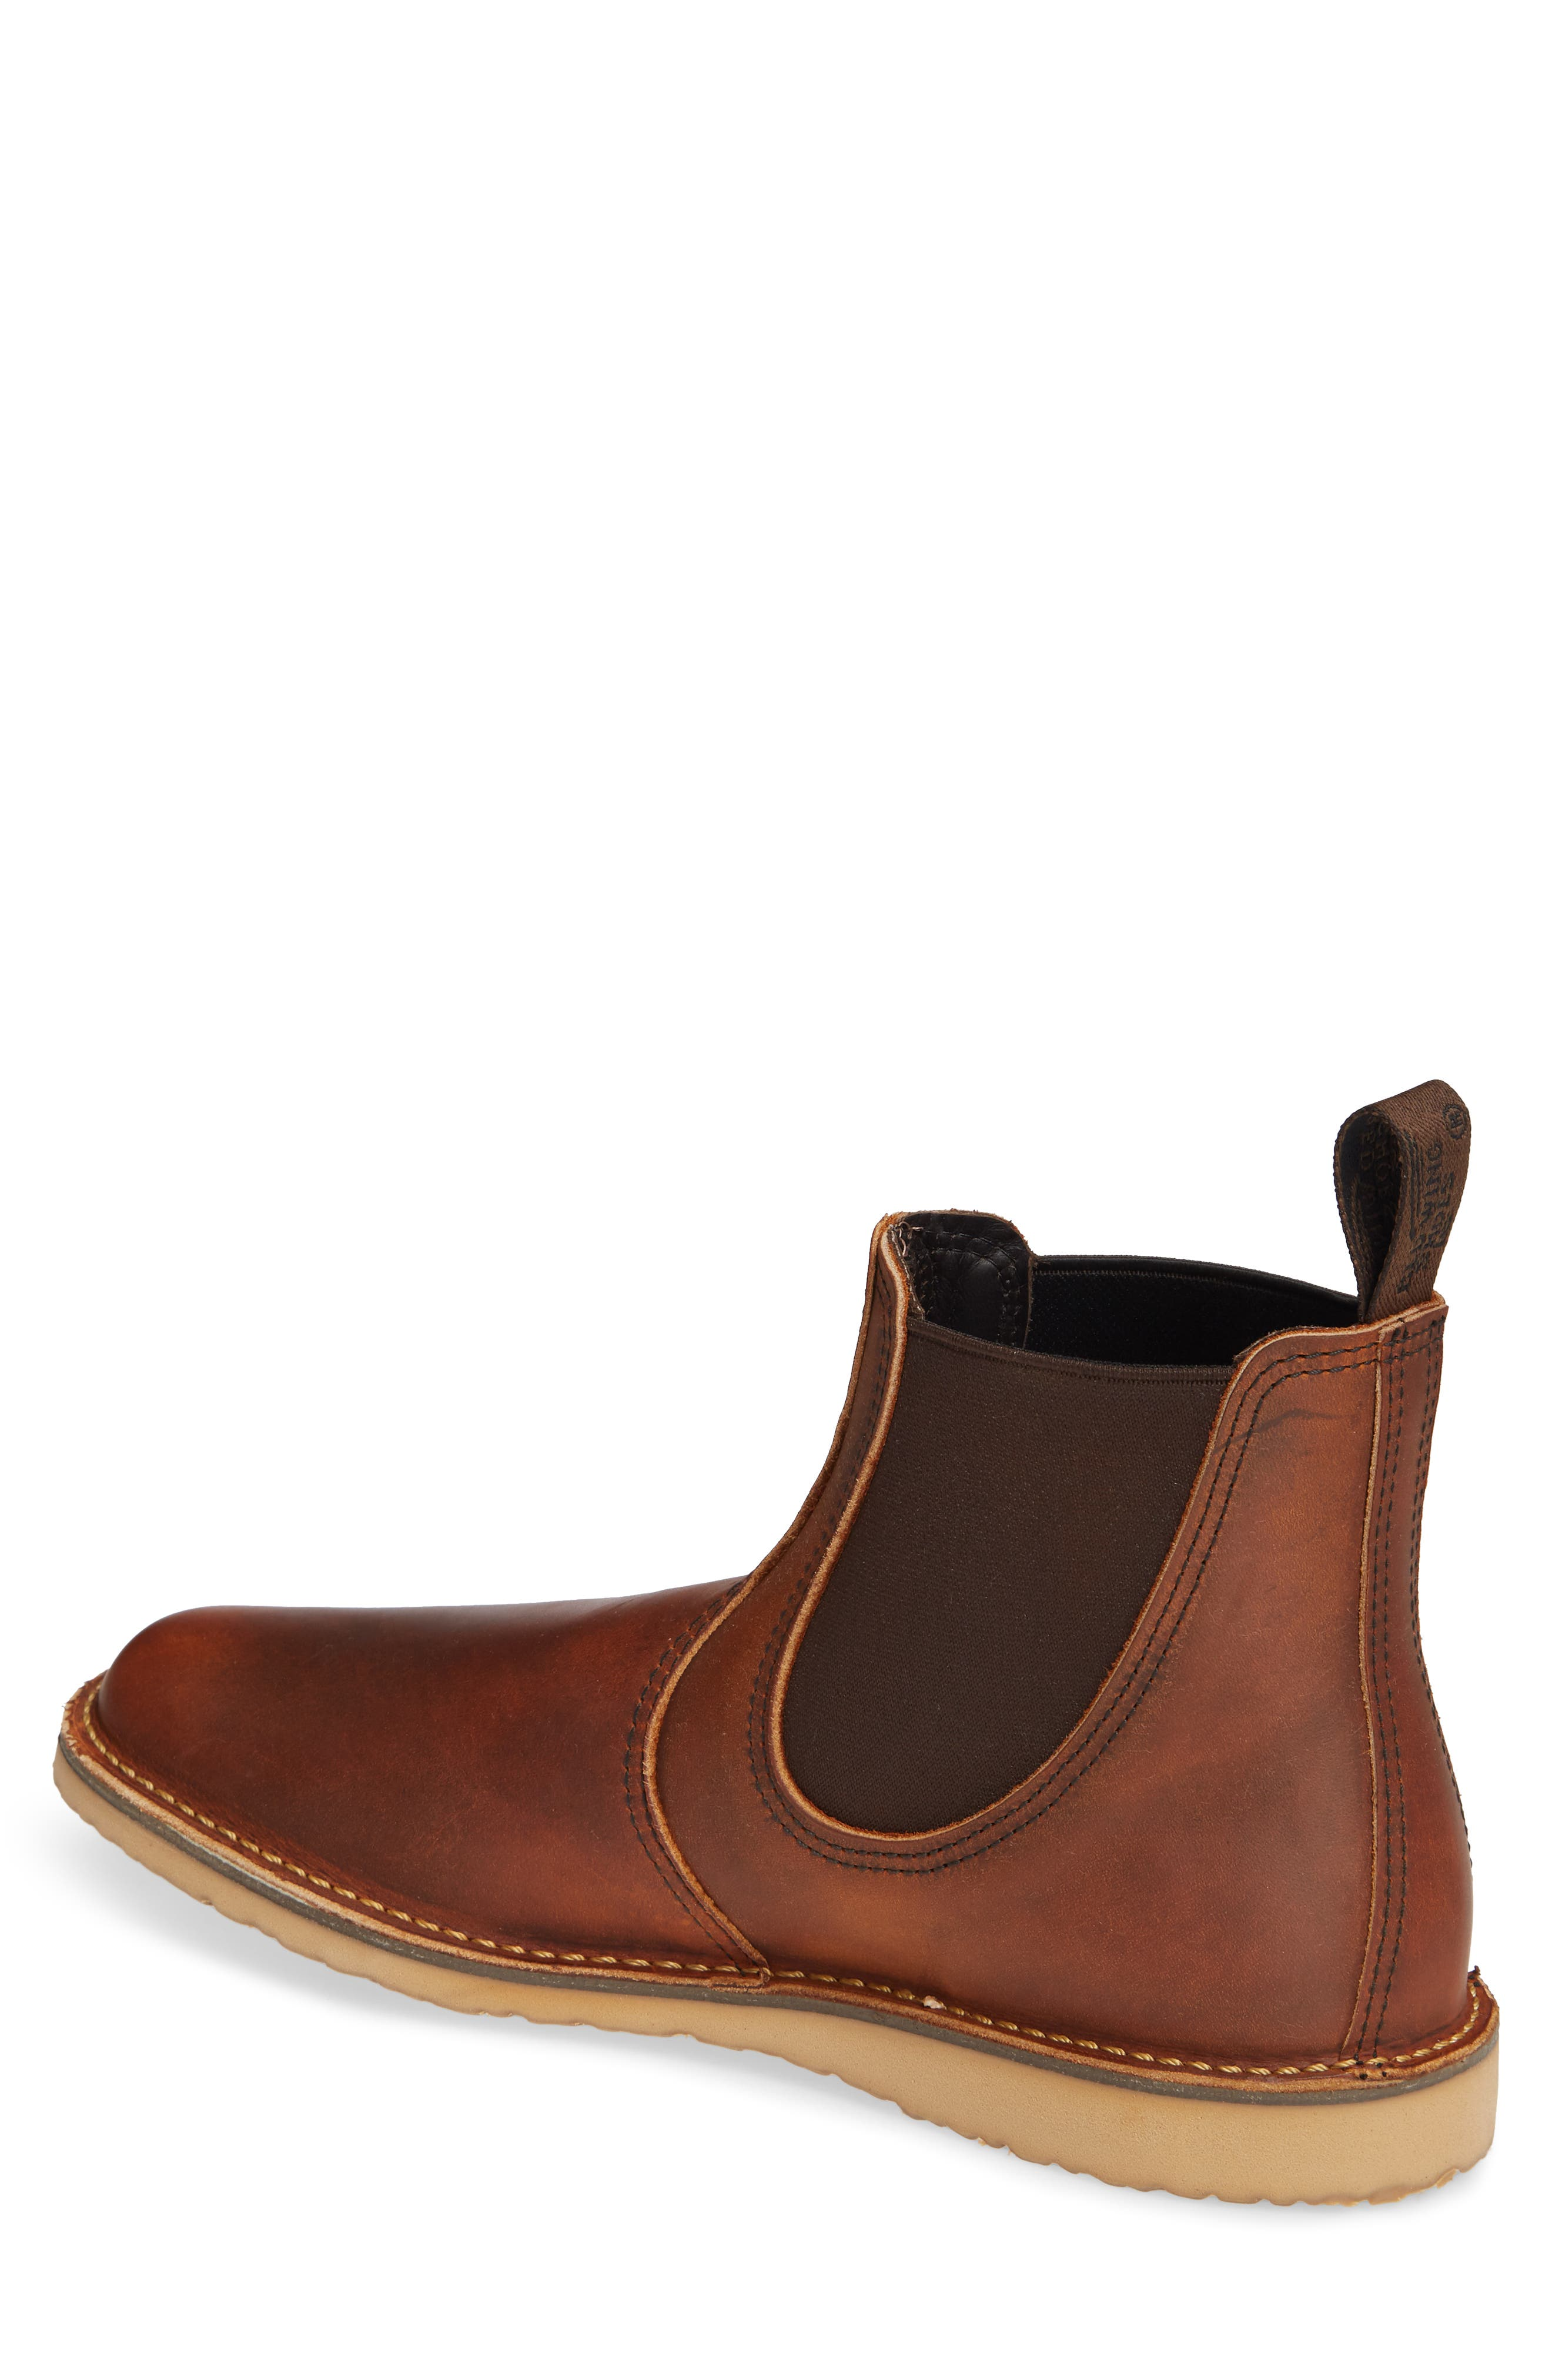 Chelsea Boot,                             Alternate thumbnail 2, color,                             COPPER LEATHER